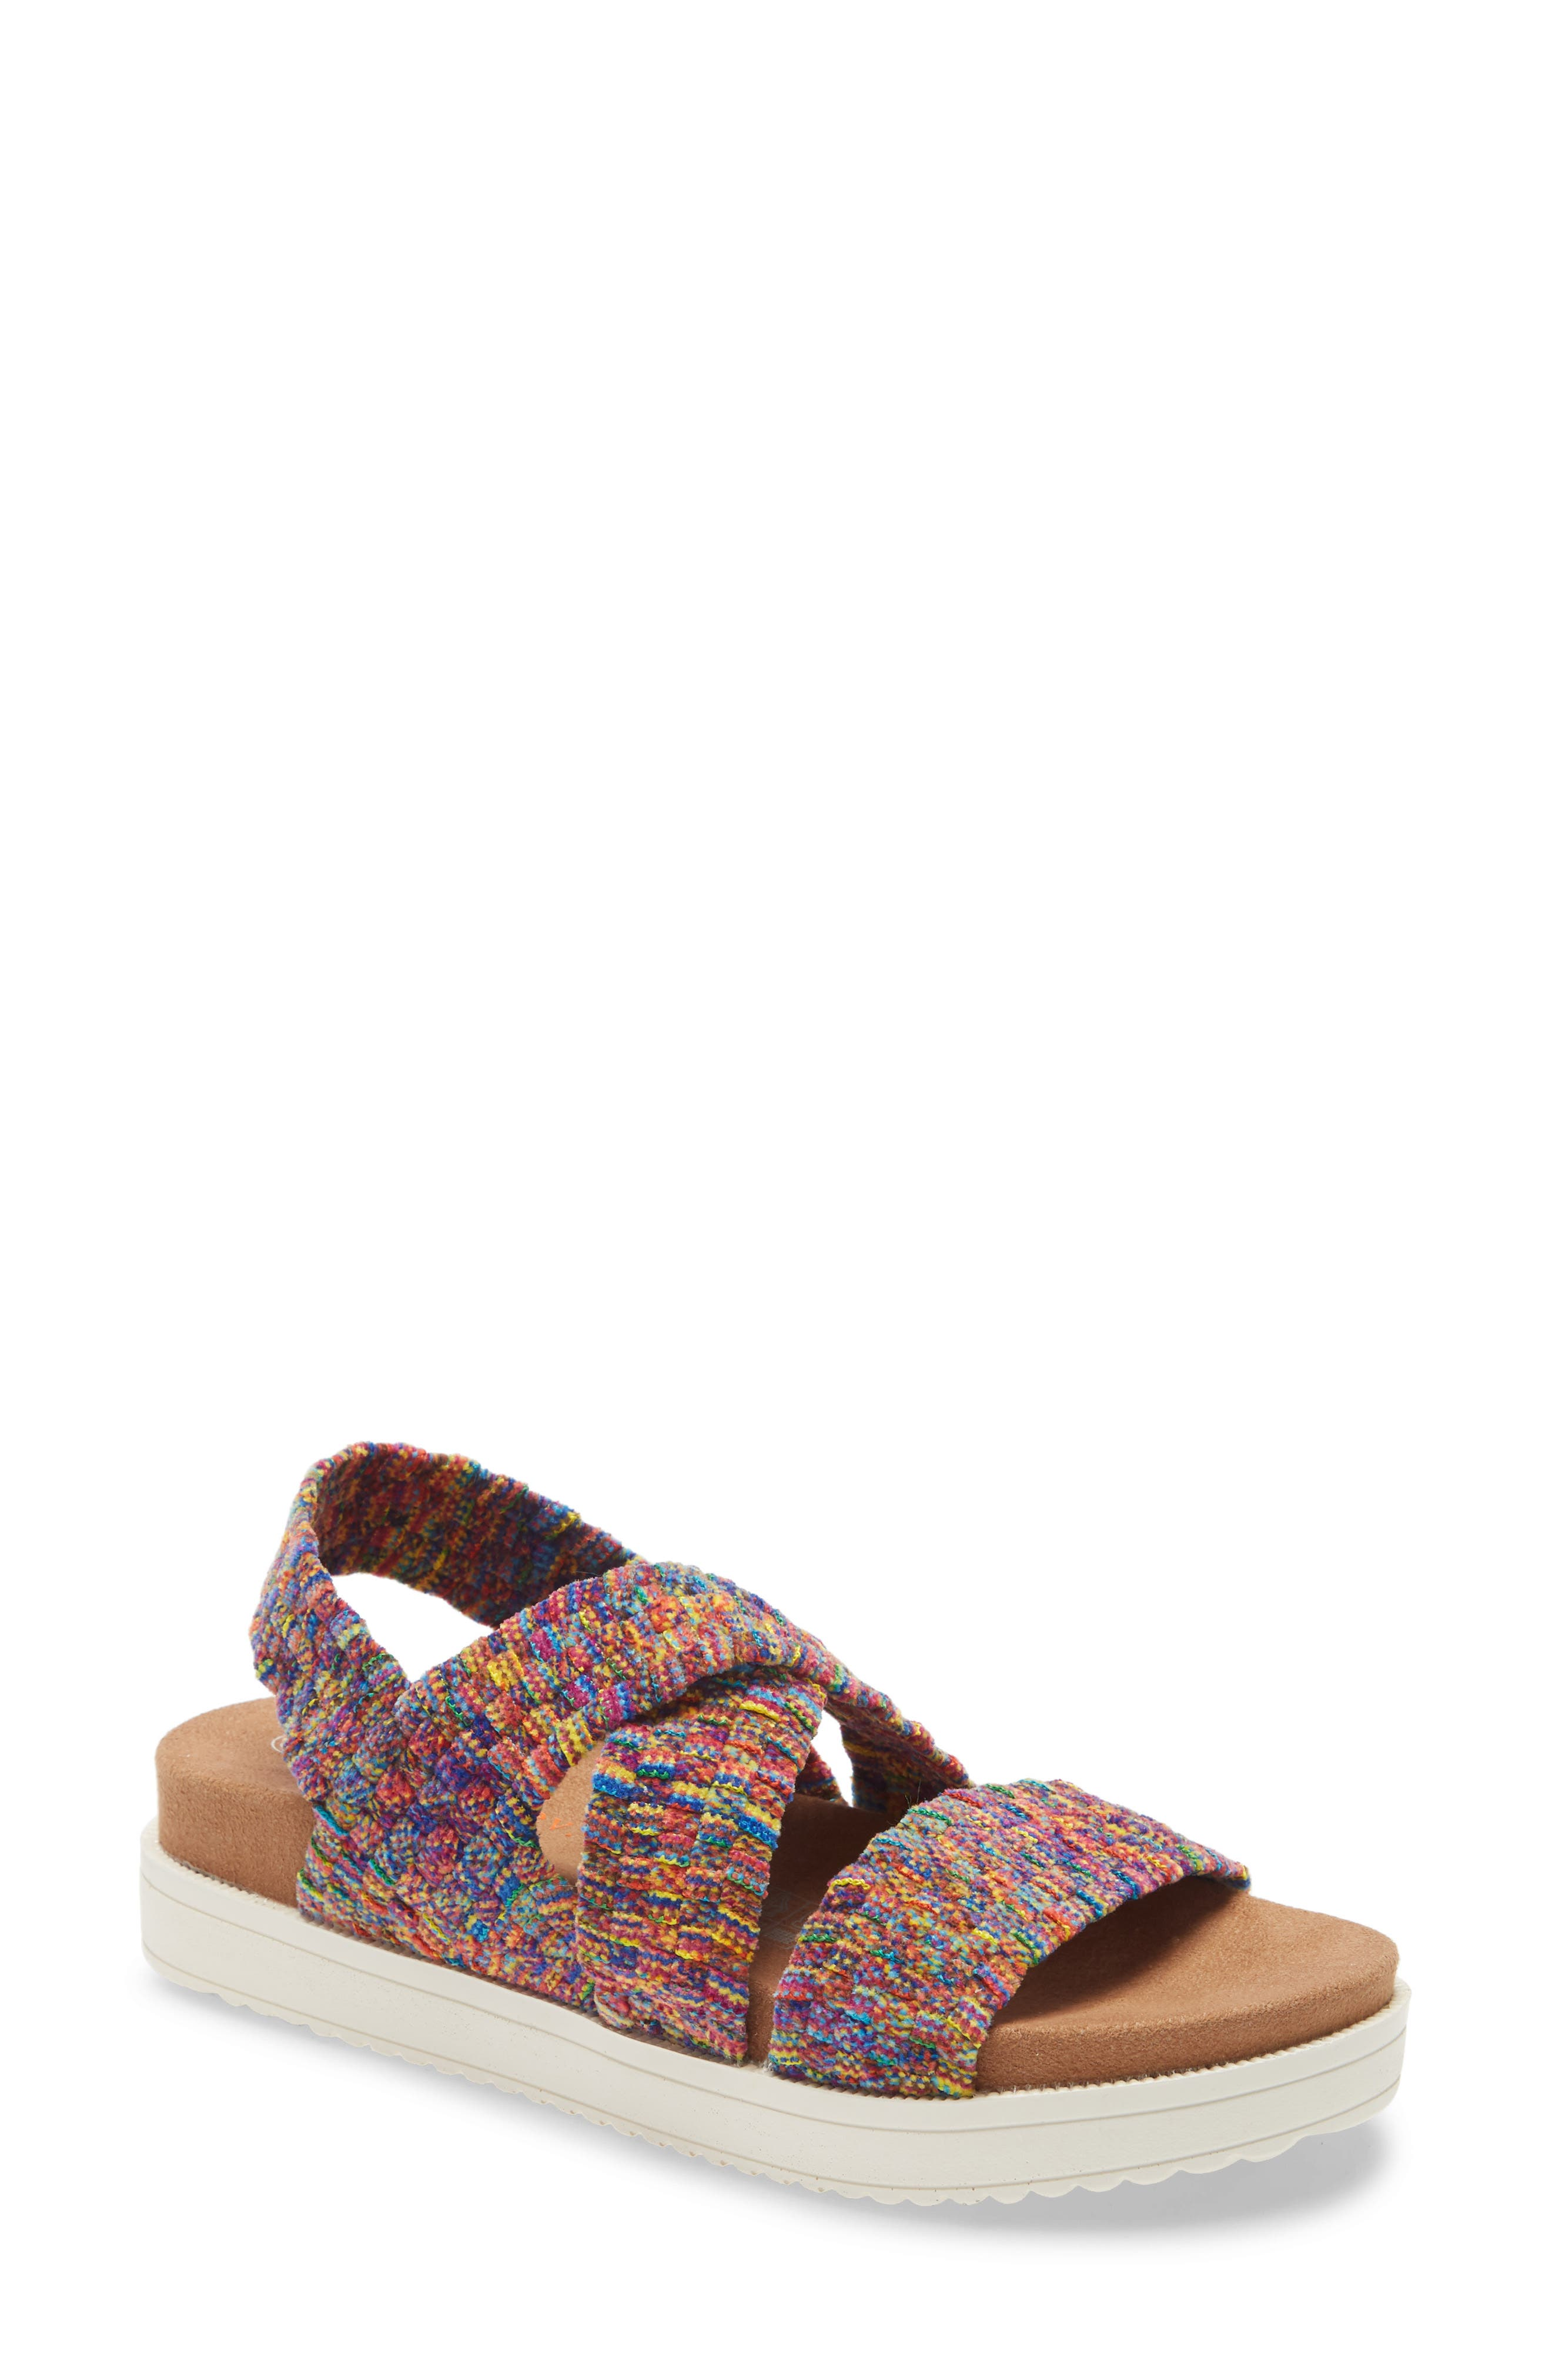 Soft chenille yarn highlights the signature woven construction of this lightweight and supremely comfortable sandal. Style Name: Bernie Mev. Woven Strap Sandal (Women). Style Number: 5985171. Available in stores.